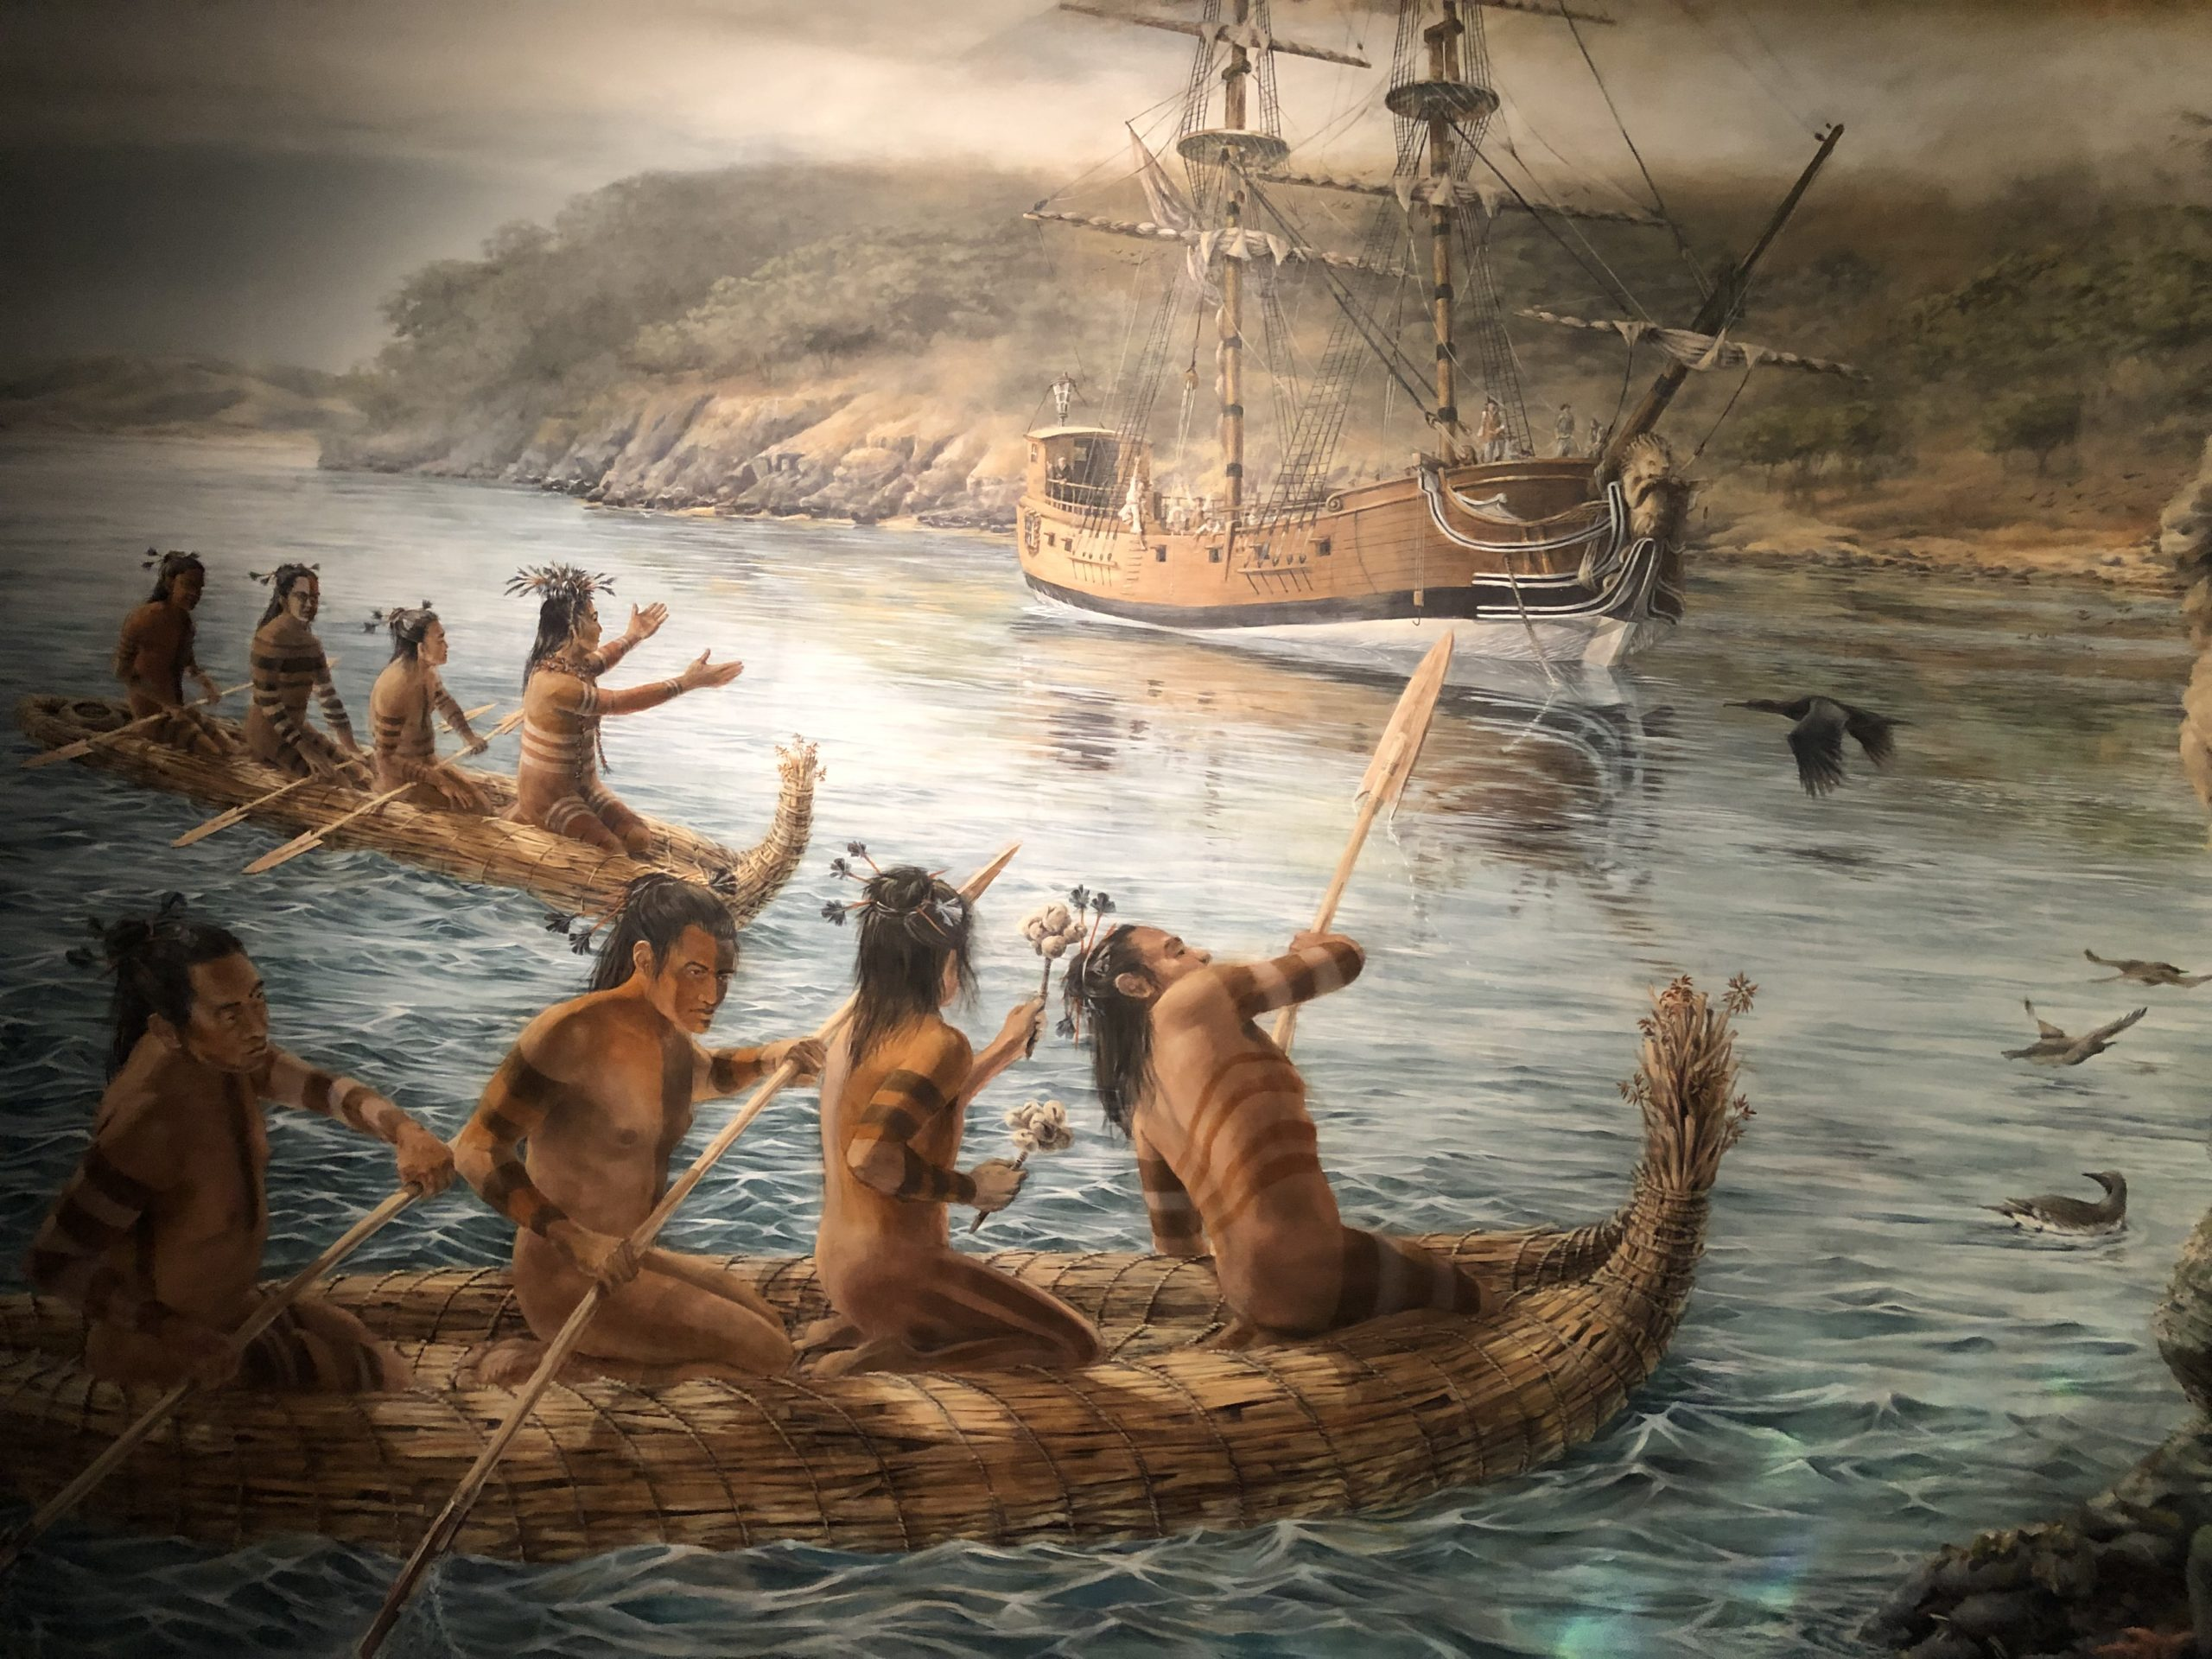 painting of Native Americans in canoes on display at the Maritime National Historical Park Visitor Center